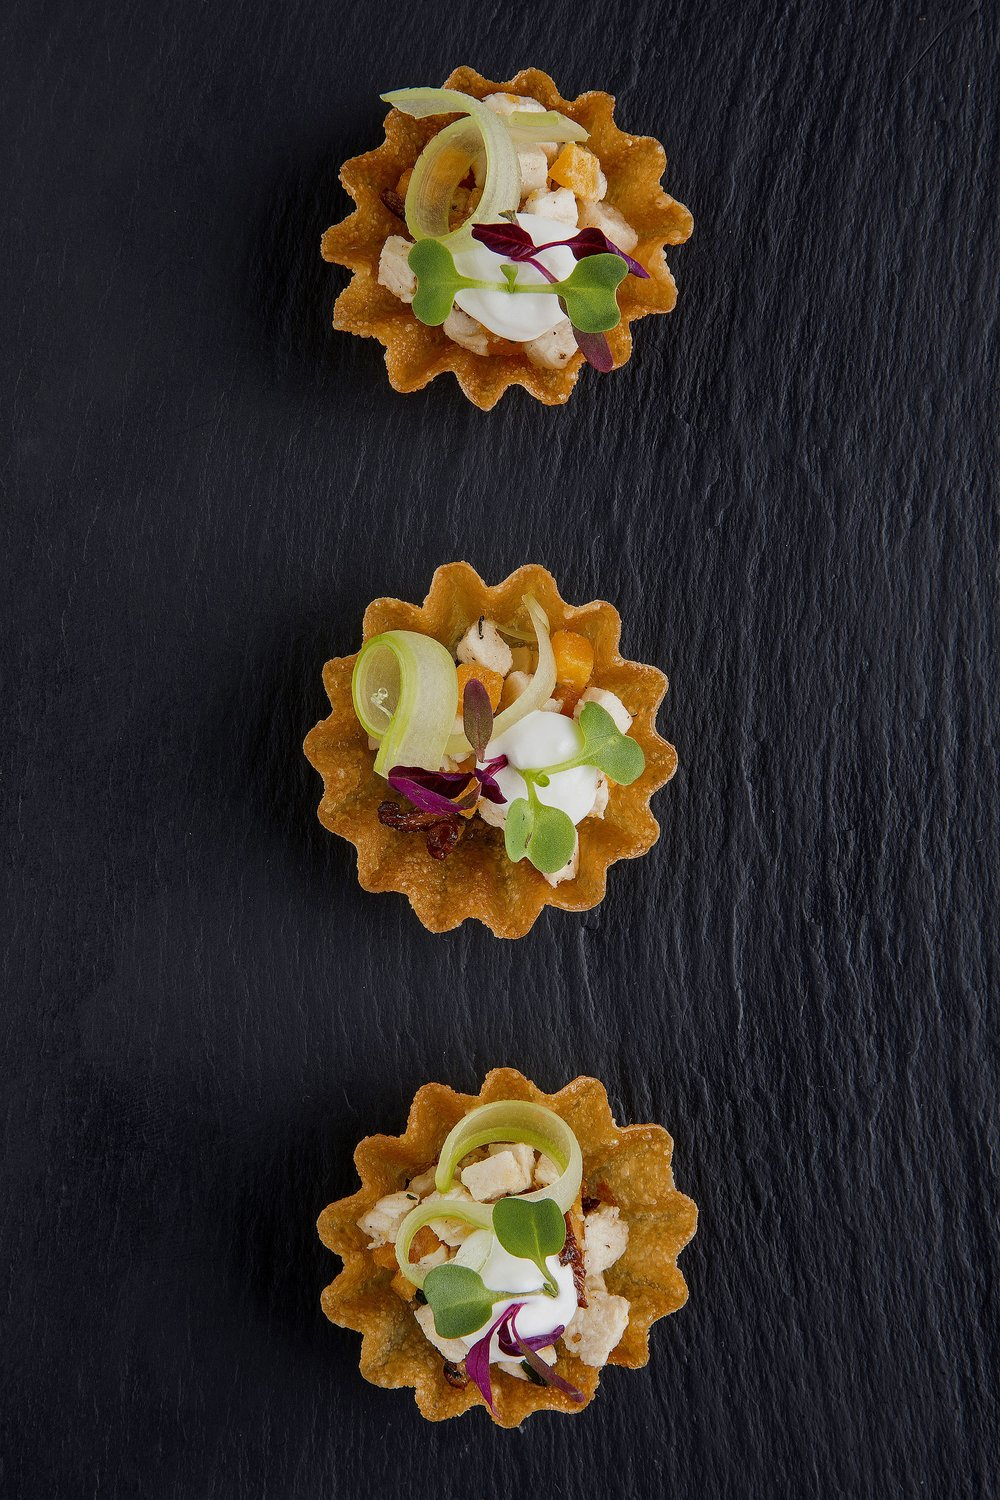 Truffle chicken tartlet 2 5E8A9851.jpg